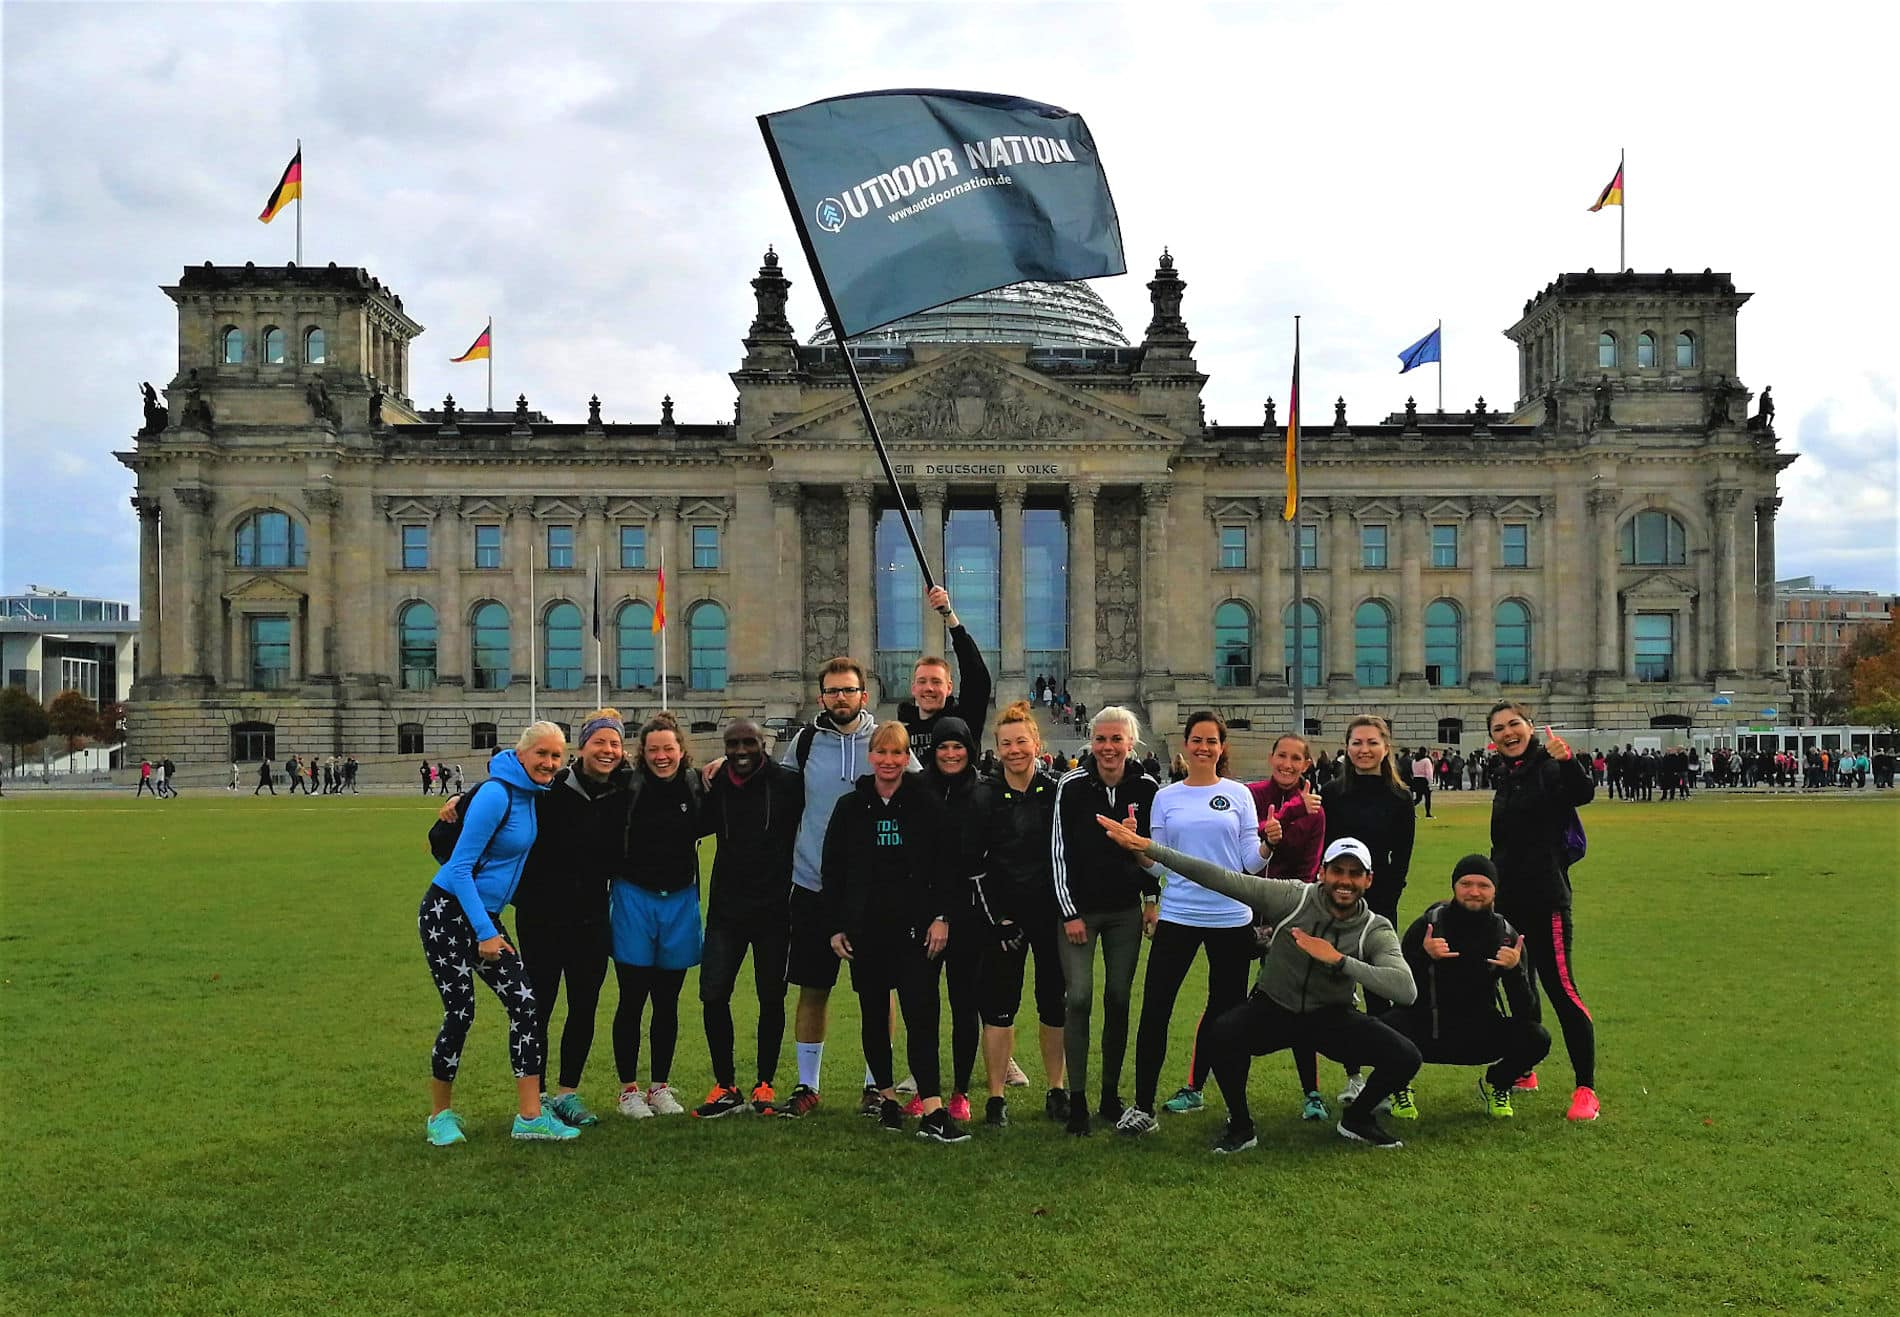 outdoor nation berlin x brandenburg sightseeing workout